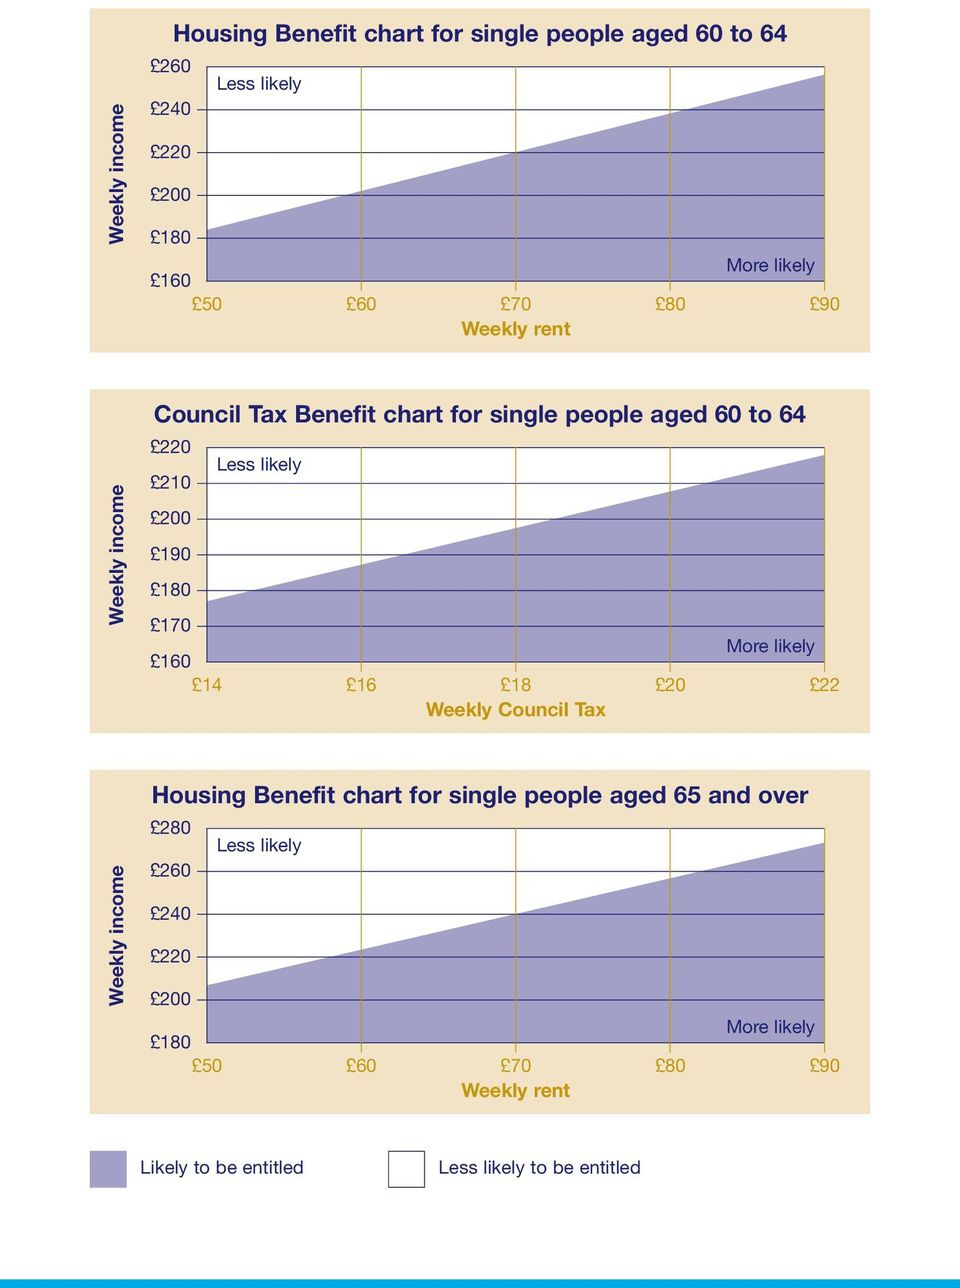 180 170 More likely 160 14 16 18 20 22 Weekly Council Tax Weekly income Housing Benefit chart for single people aged 65 and